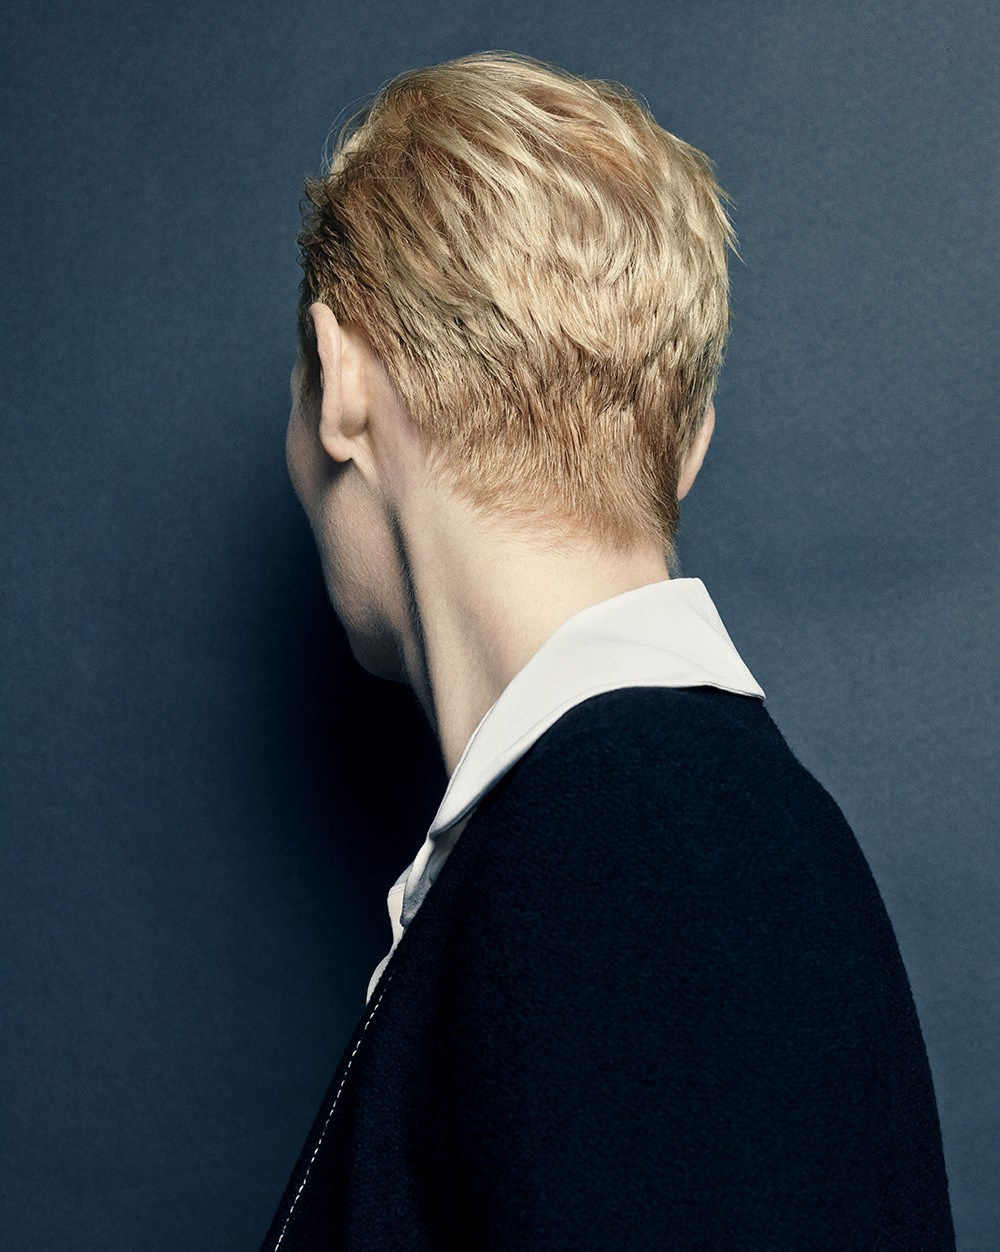 tilda-swinton-by-hong-jang-hyun-vogue-korea-august-2015-10